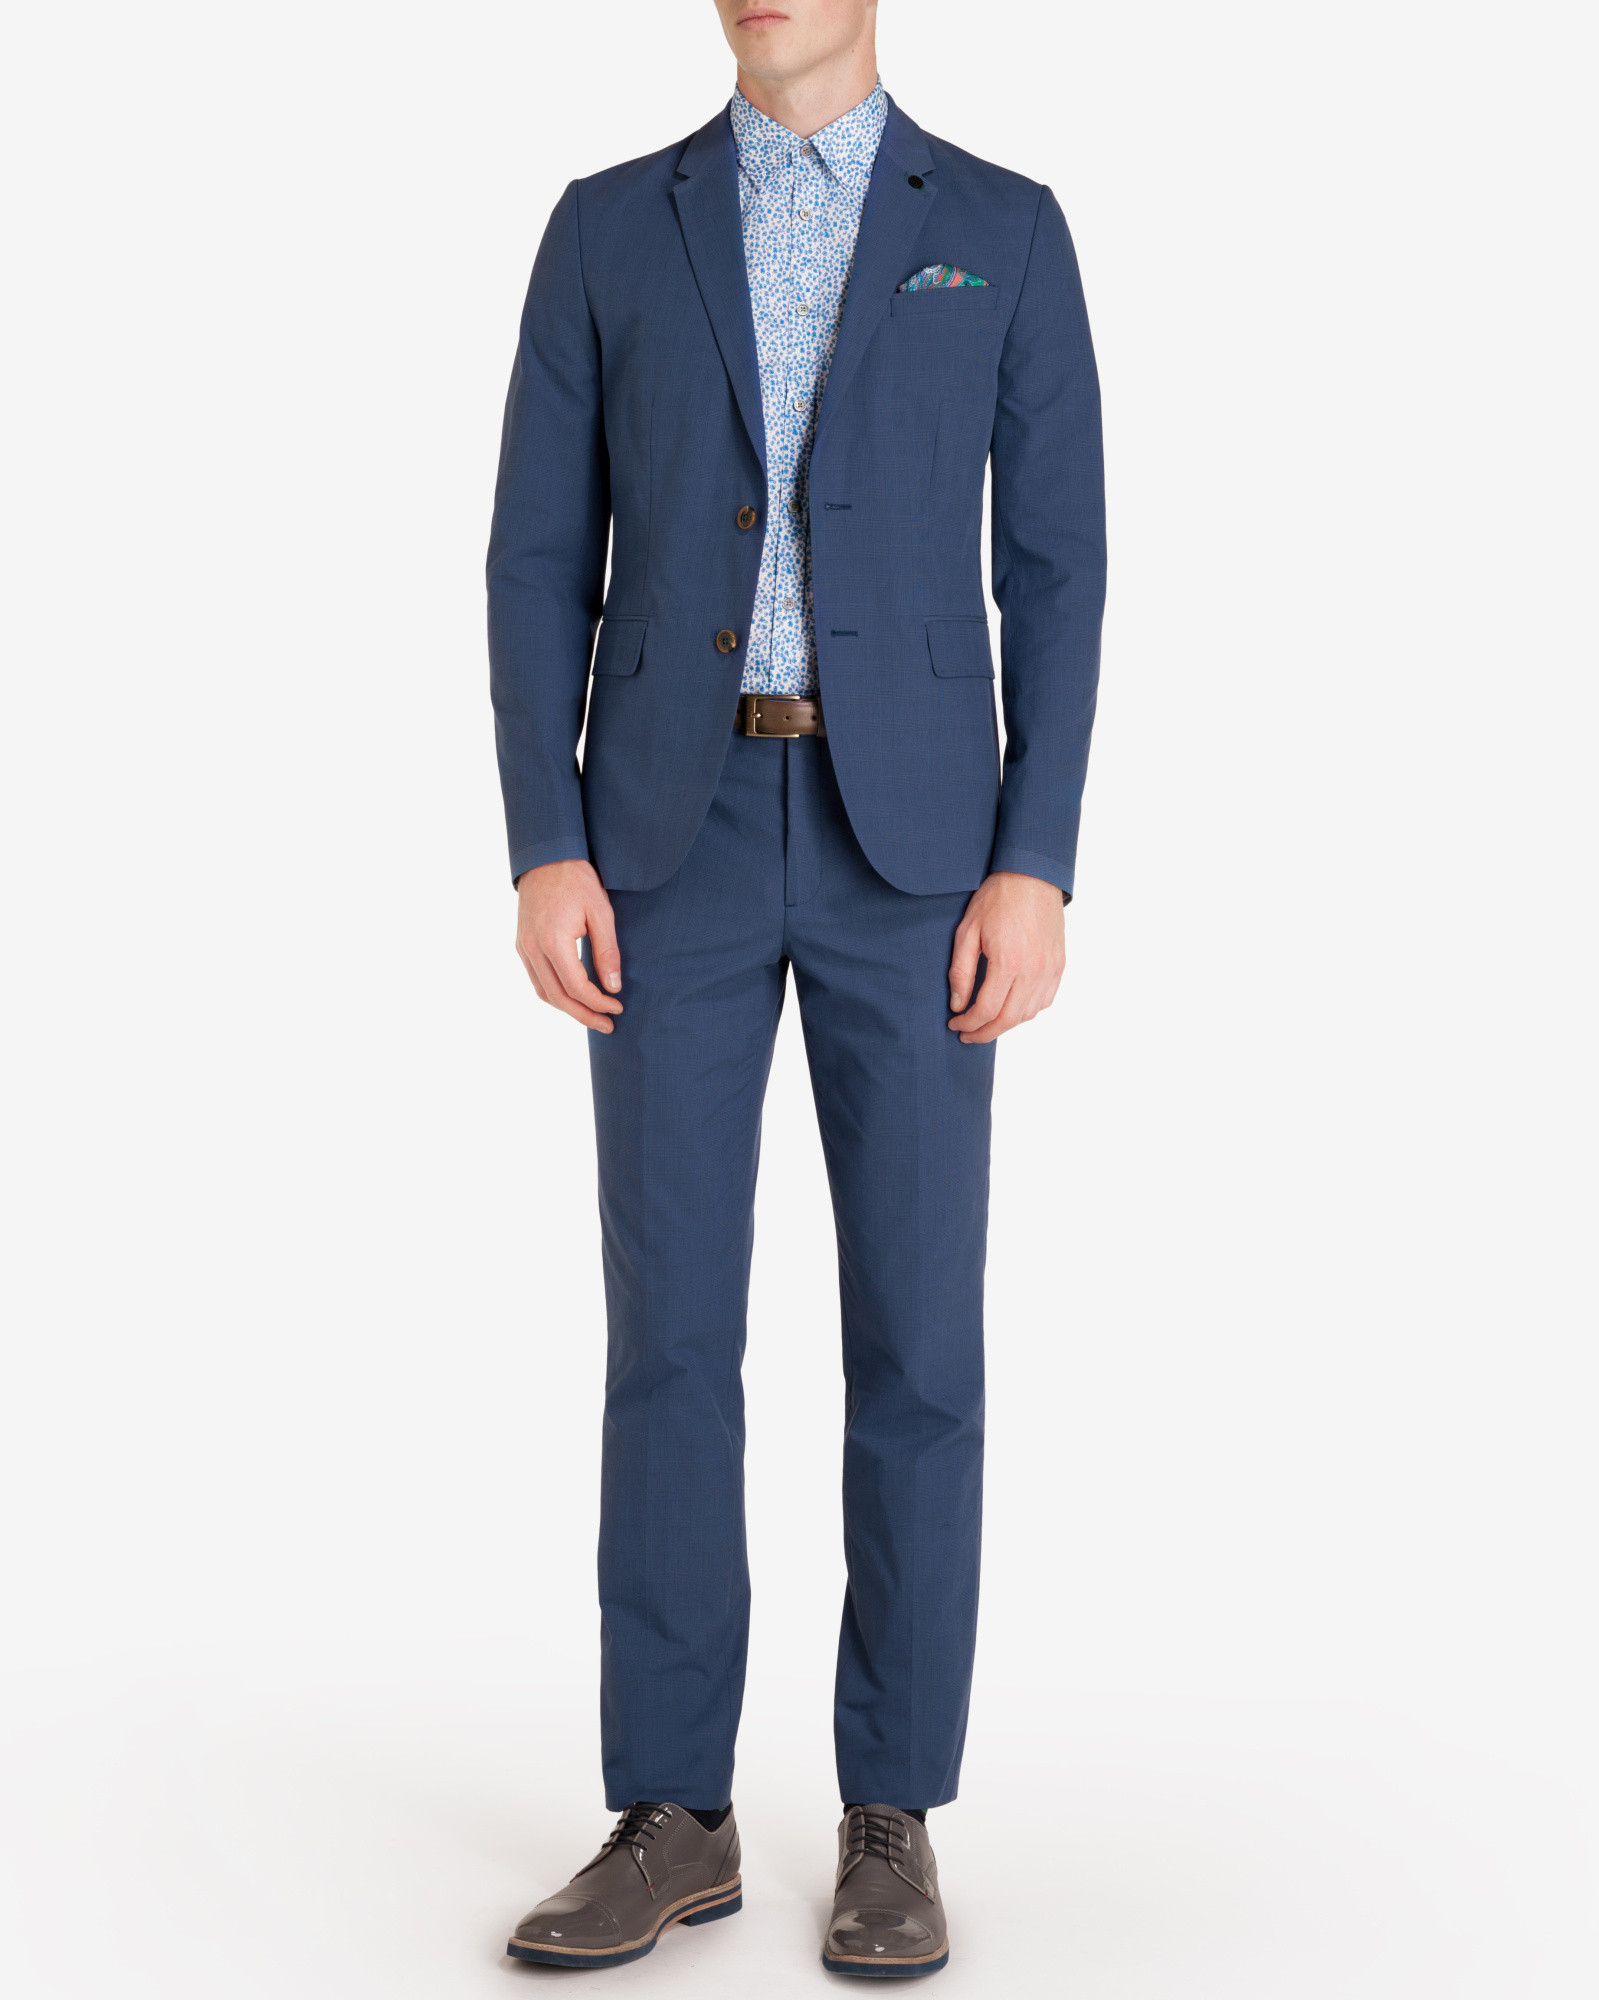 Ted Baker Prince Of Wales Check Trousers in Dark Blue (Blue) for Men